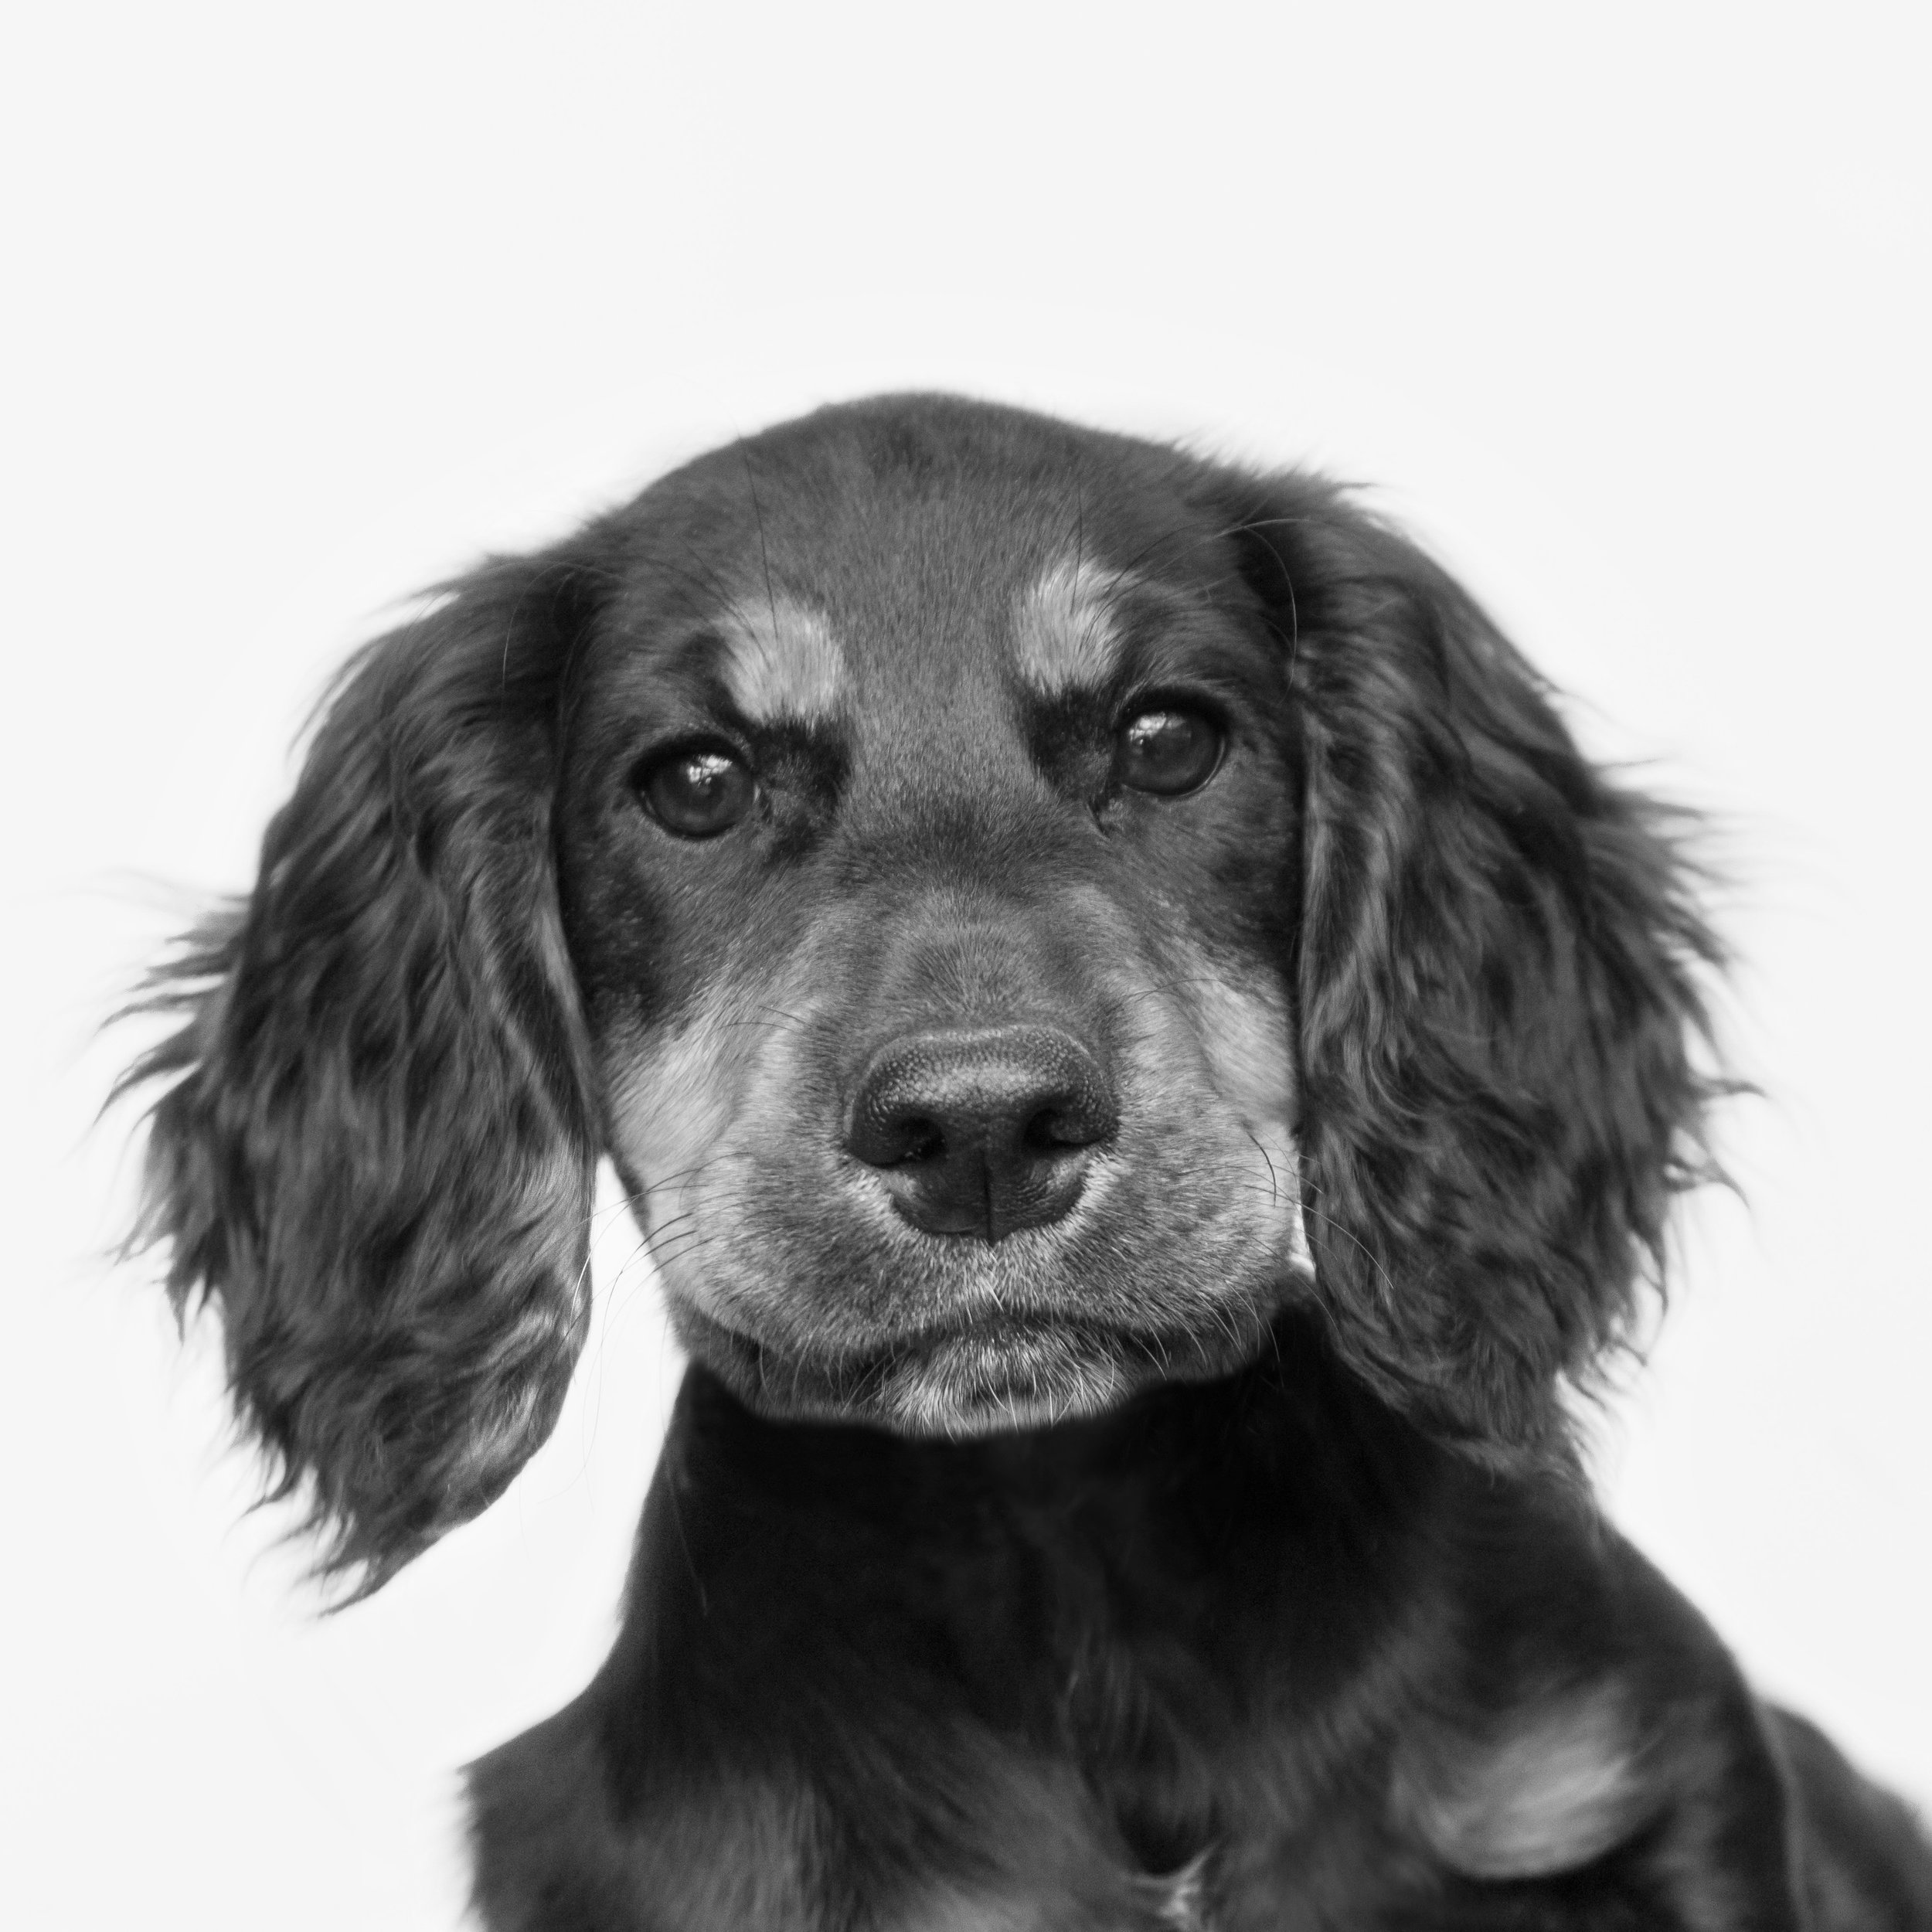 Purdey -  Chief of Motivation  Purdey joined the office in May 2018 and has been an exceptional Chief of Motivation ever since. She is very clever, loves belly rubs and meeting new people. Purdey is a talented motivator, which helps the office to maintain high levels of productivity throughout the working day.